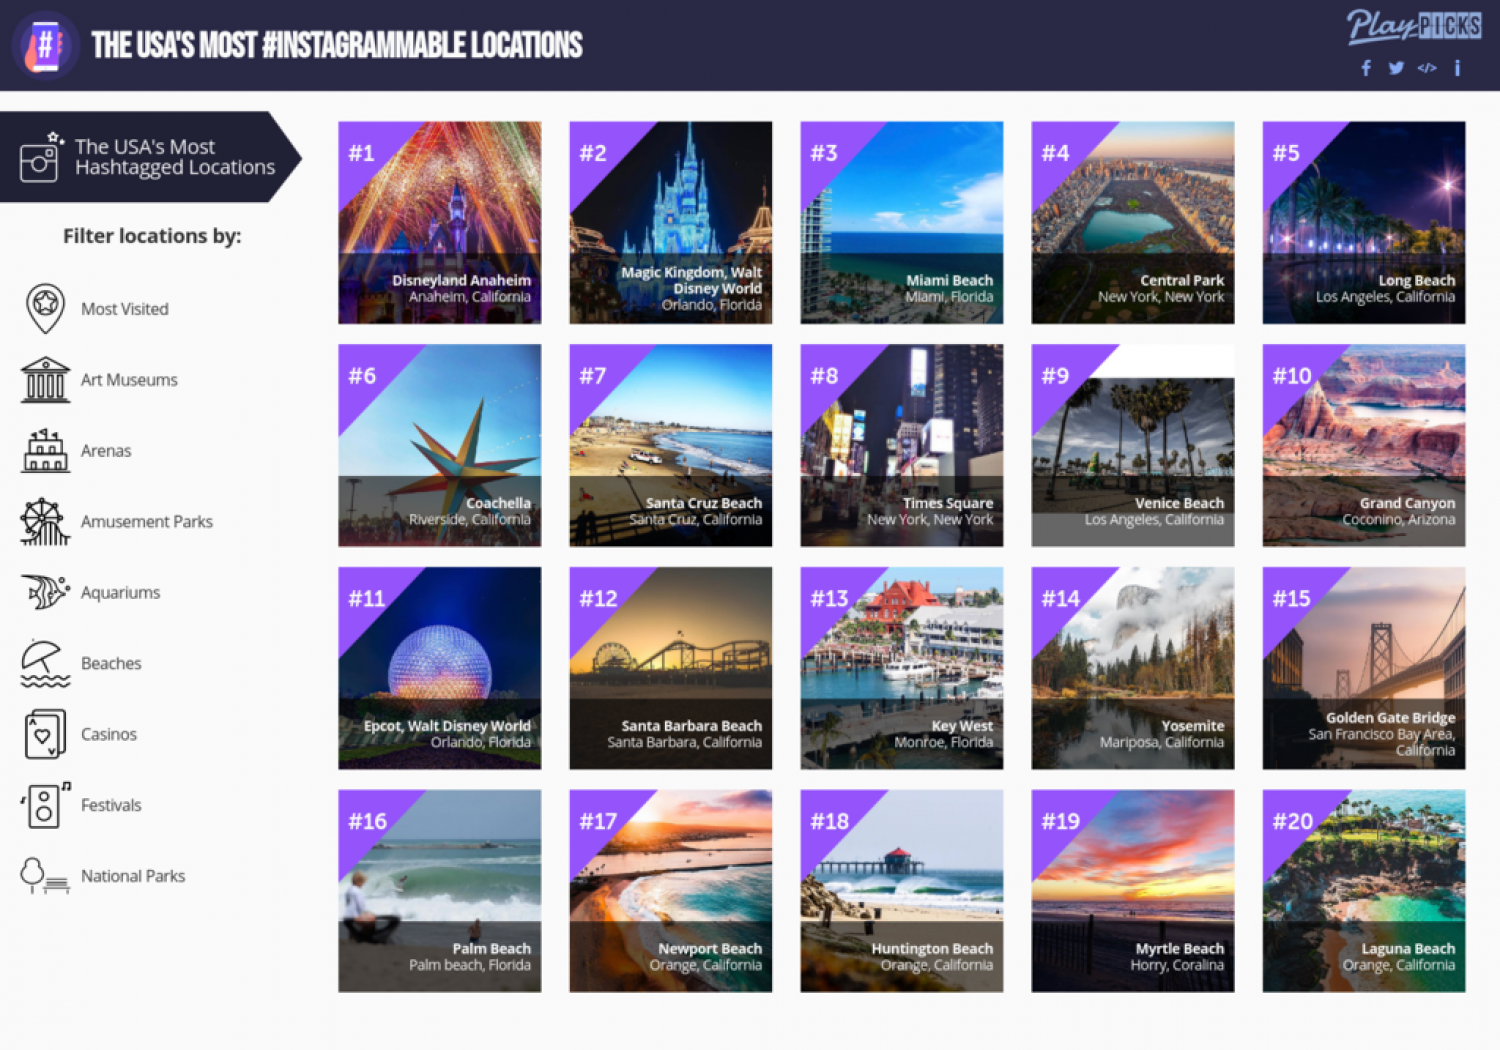 The USA's Most Instagrammable Locations Infographic